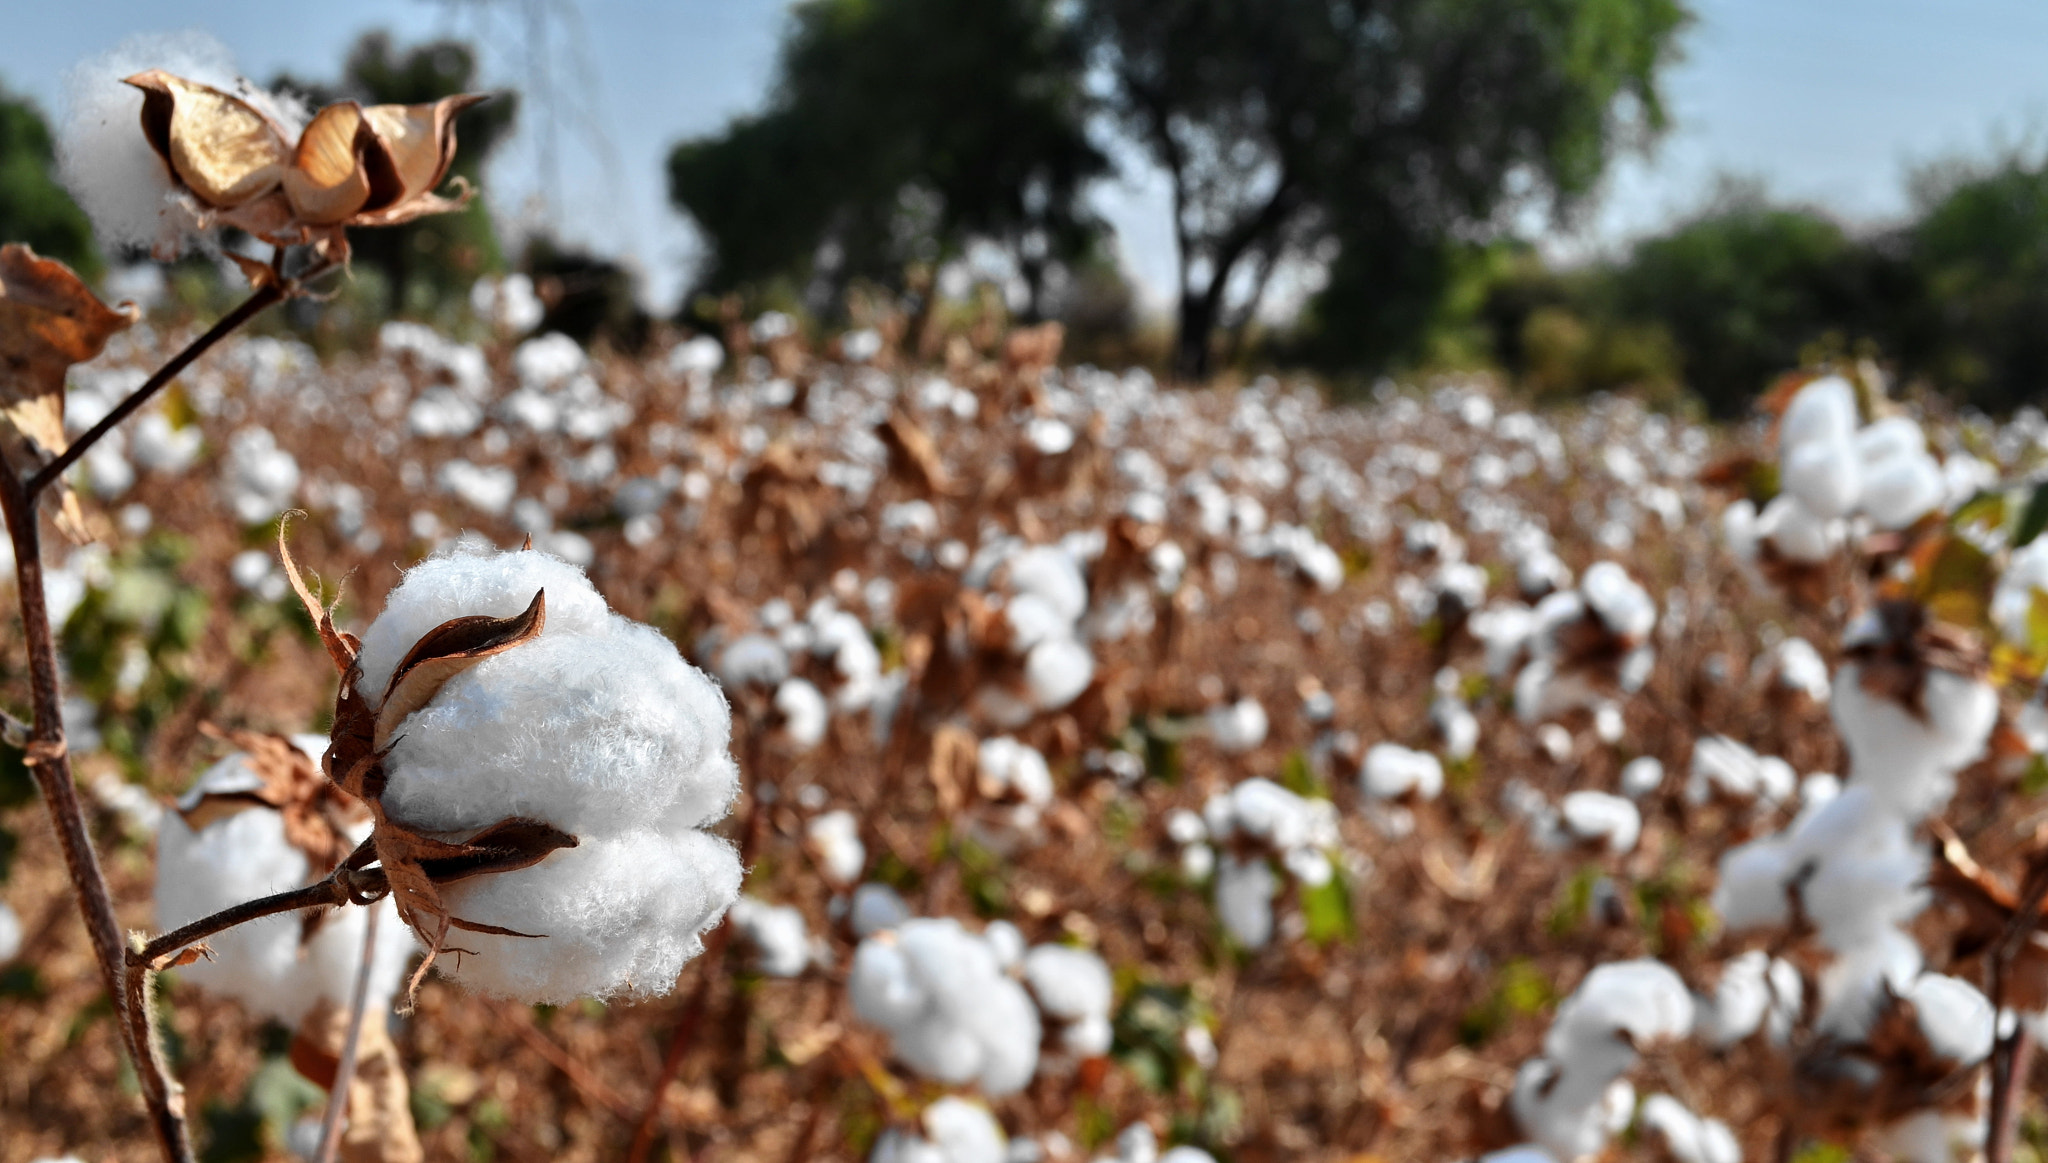 Photograph Cotton by Shishir Agrawal on 500px